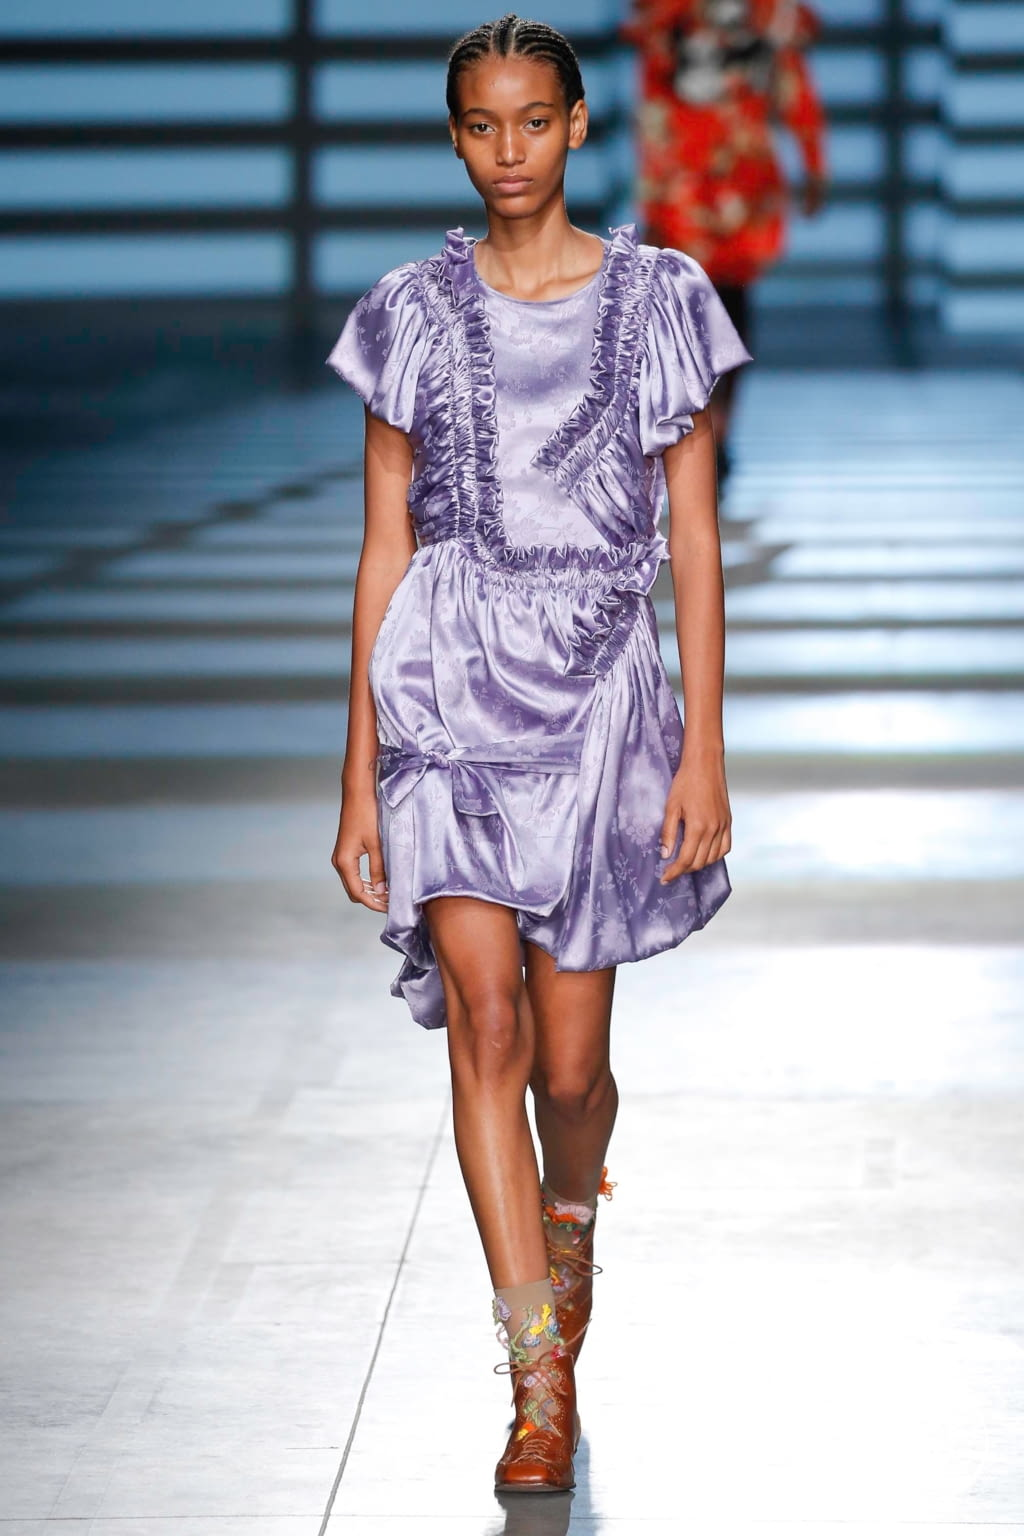 Fashion Week London Spring/Summer 2020 look 14 from the Preen by Thornton Bregazzi collection 女装